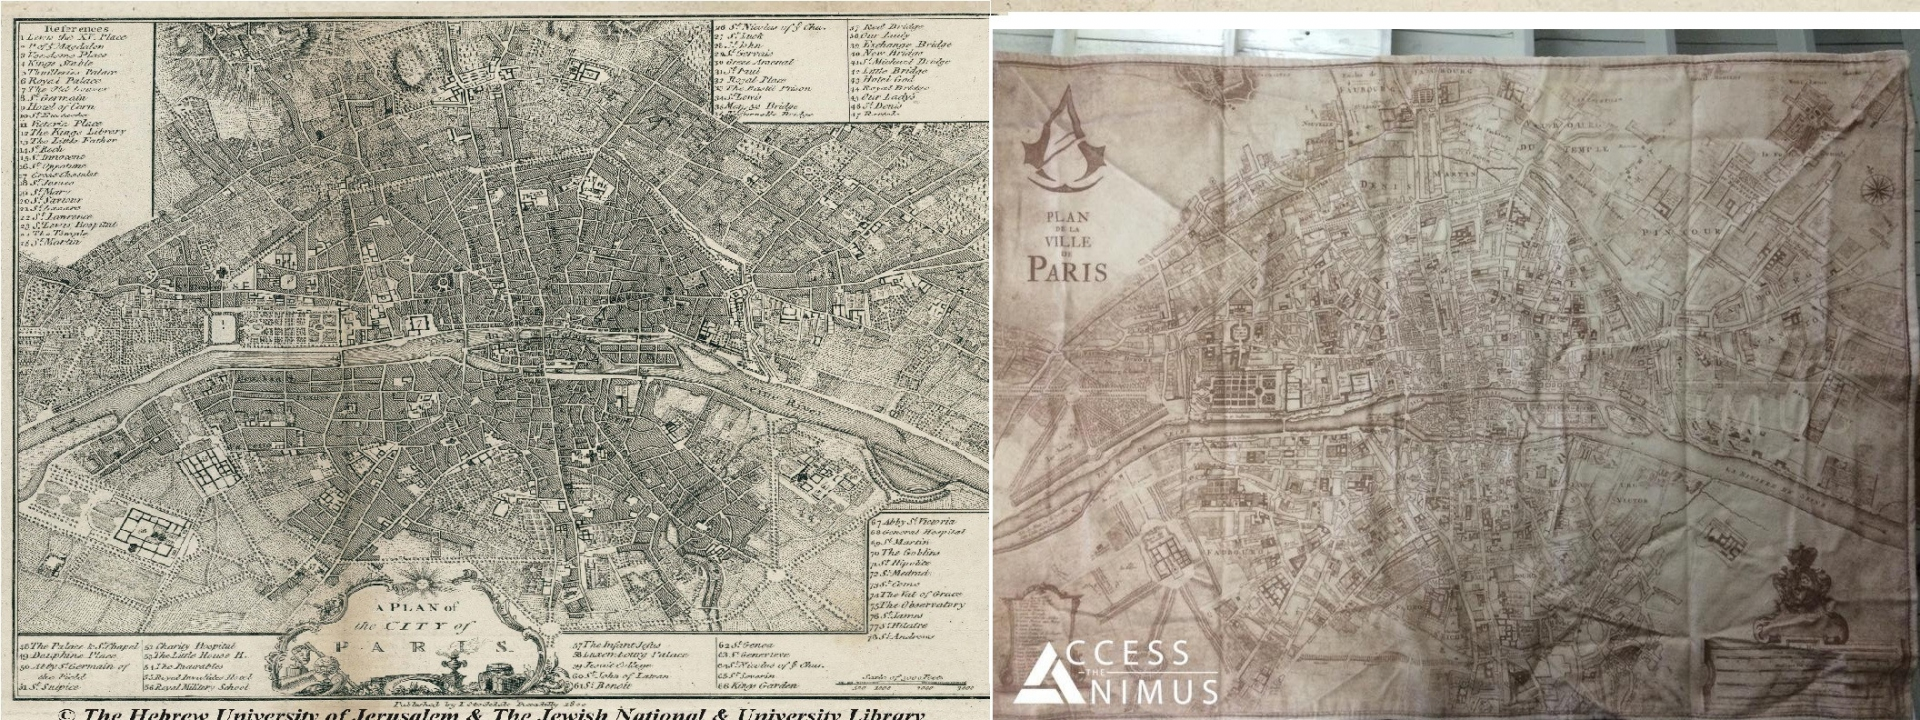 Assassin's Creed Unity - Map and Paris